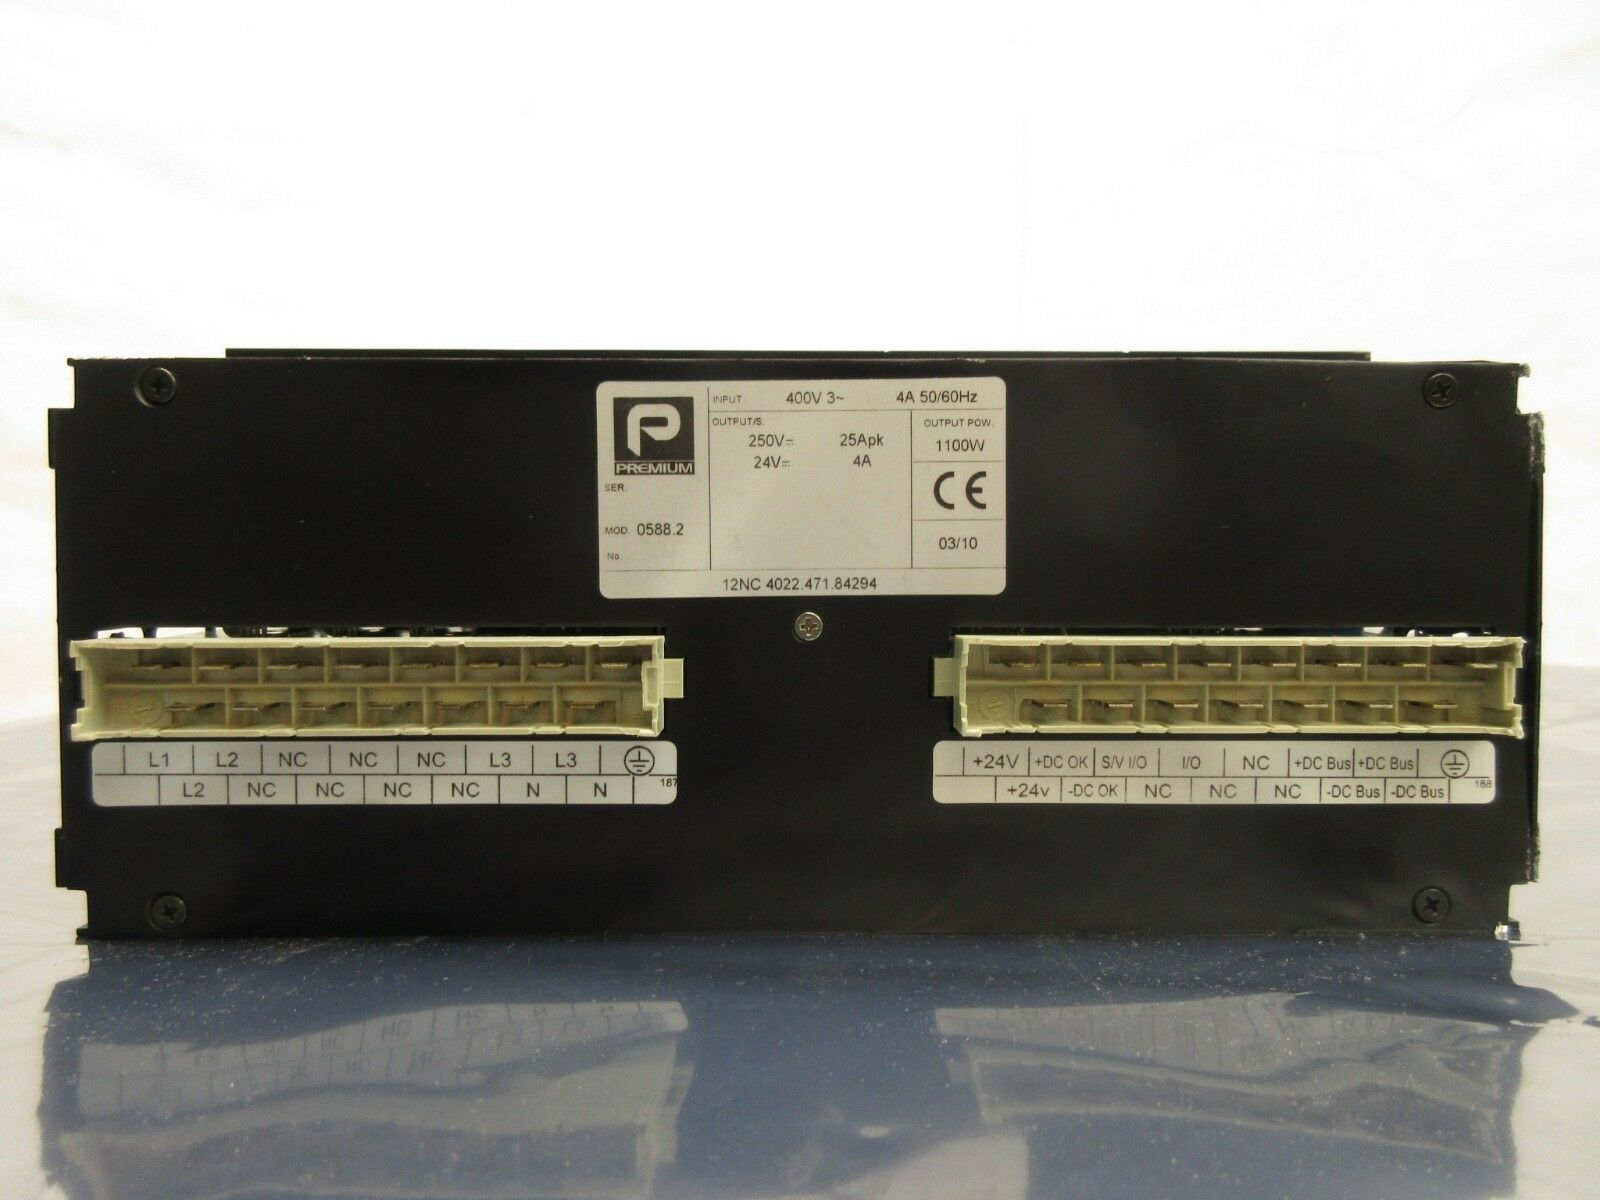 Premium 0588.2 Power Supply PCB Card ASML 4022.471.84294 Used Working